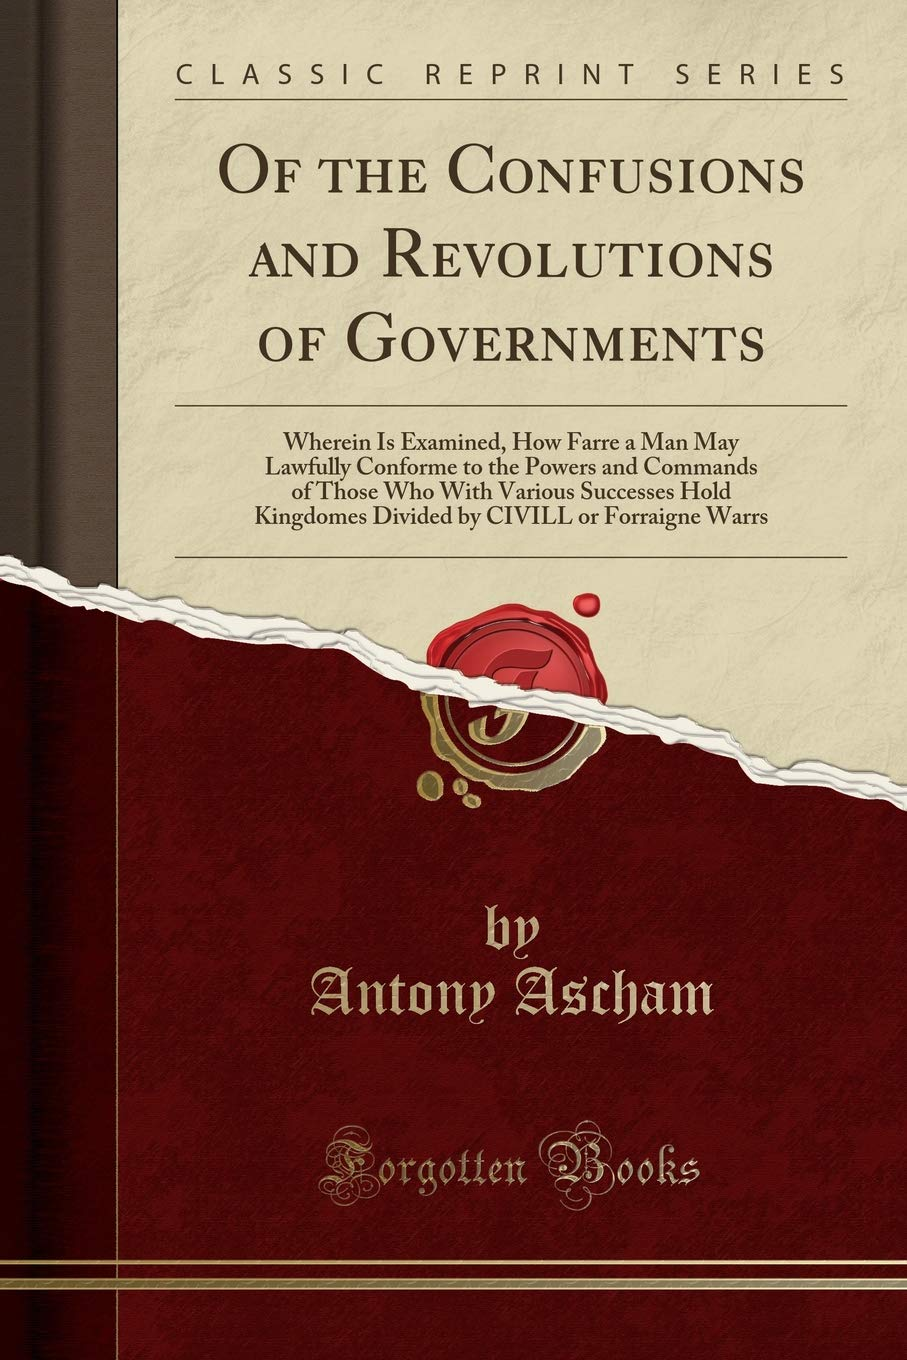 Of the Confusions and Revolutions of Governments: Wherein Is Examined, How Farre a Man May Lawfully Conforme to the Powers and Commands of Those Who ... CIVILL or Forraigne Warrs (Classic Reprint) ebook